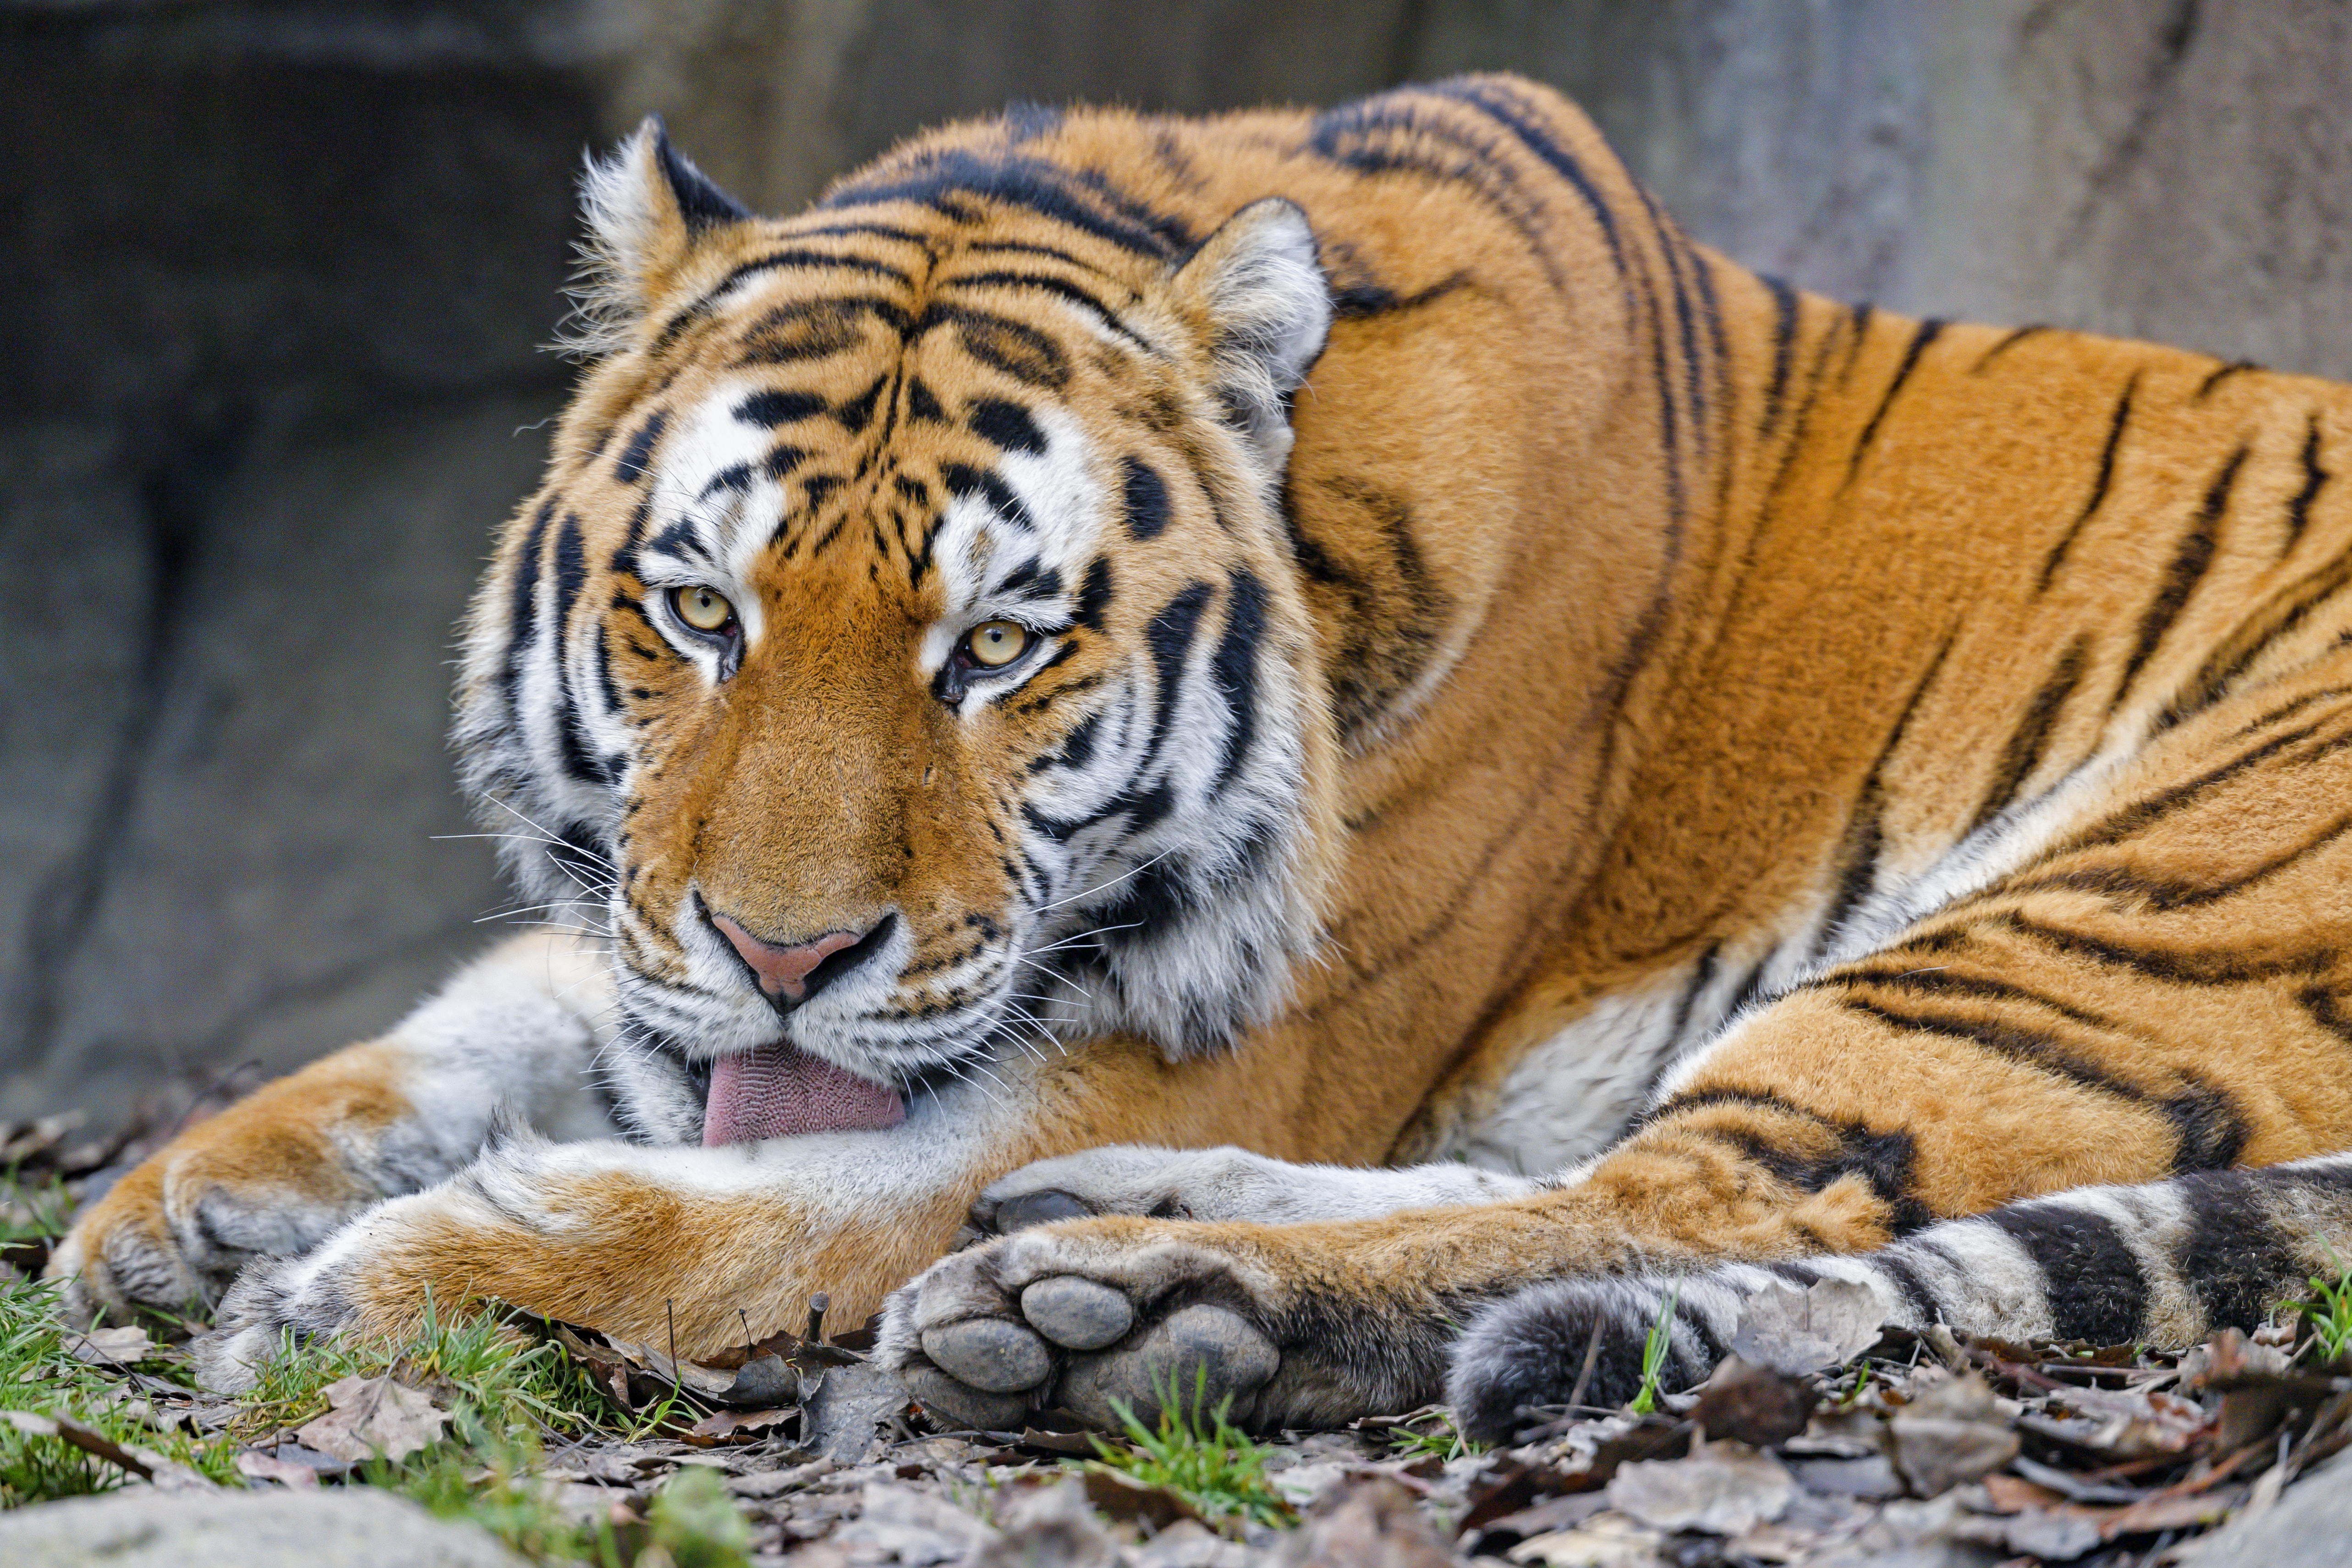 82306 download wallpaper Animals, Tiger, Protruding Tongue, Tongue Stuck Out, Animal, Big Cat, Wild screensavers and pictures for free